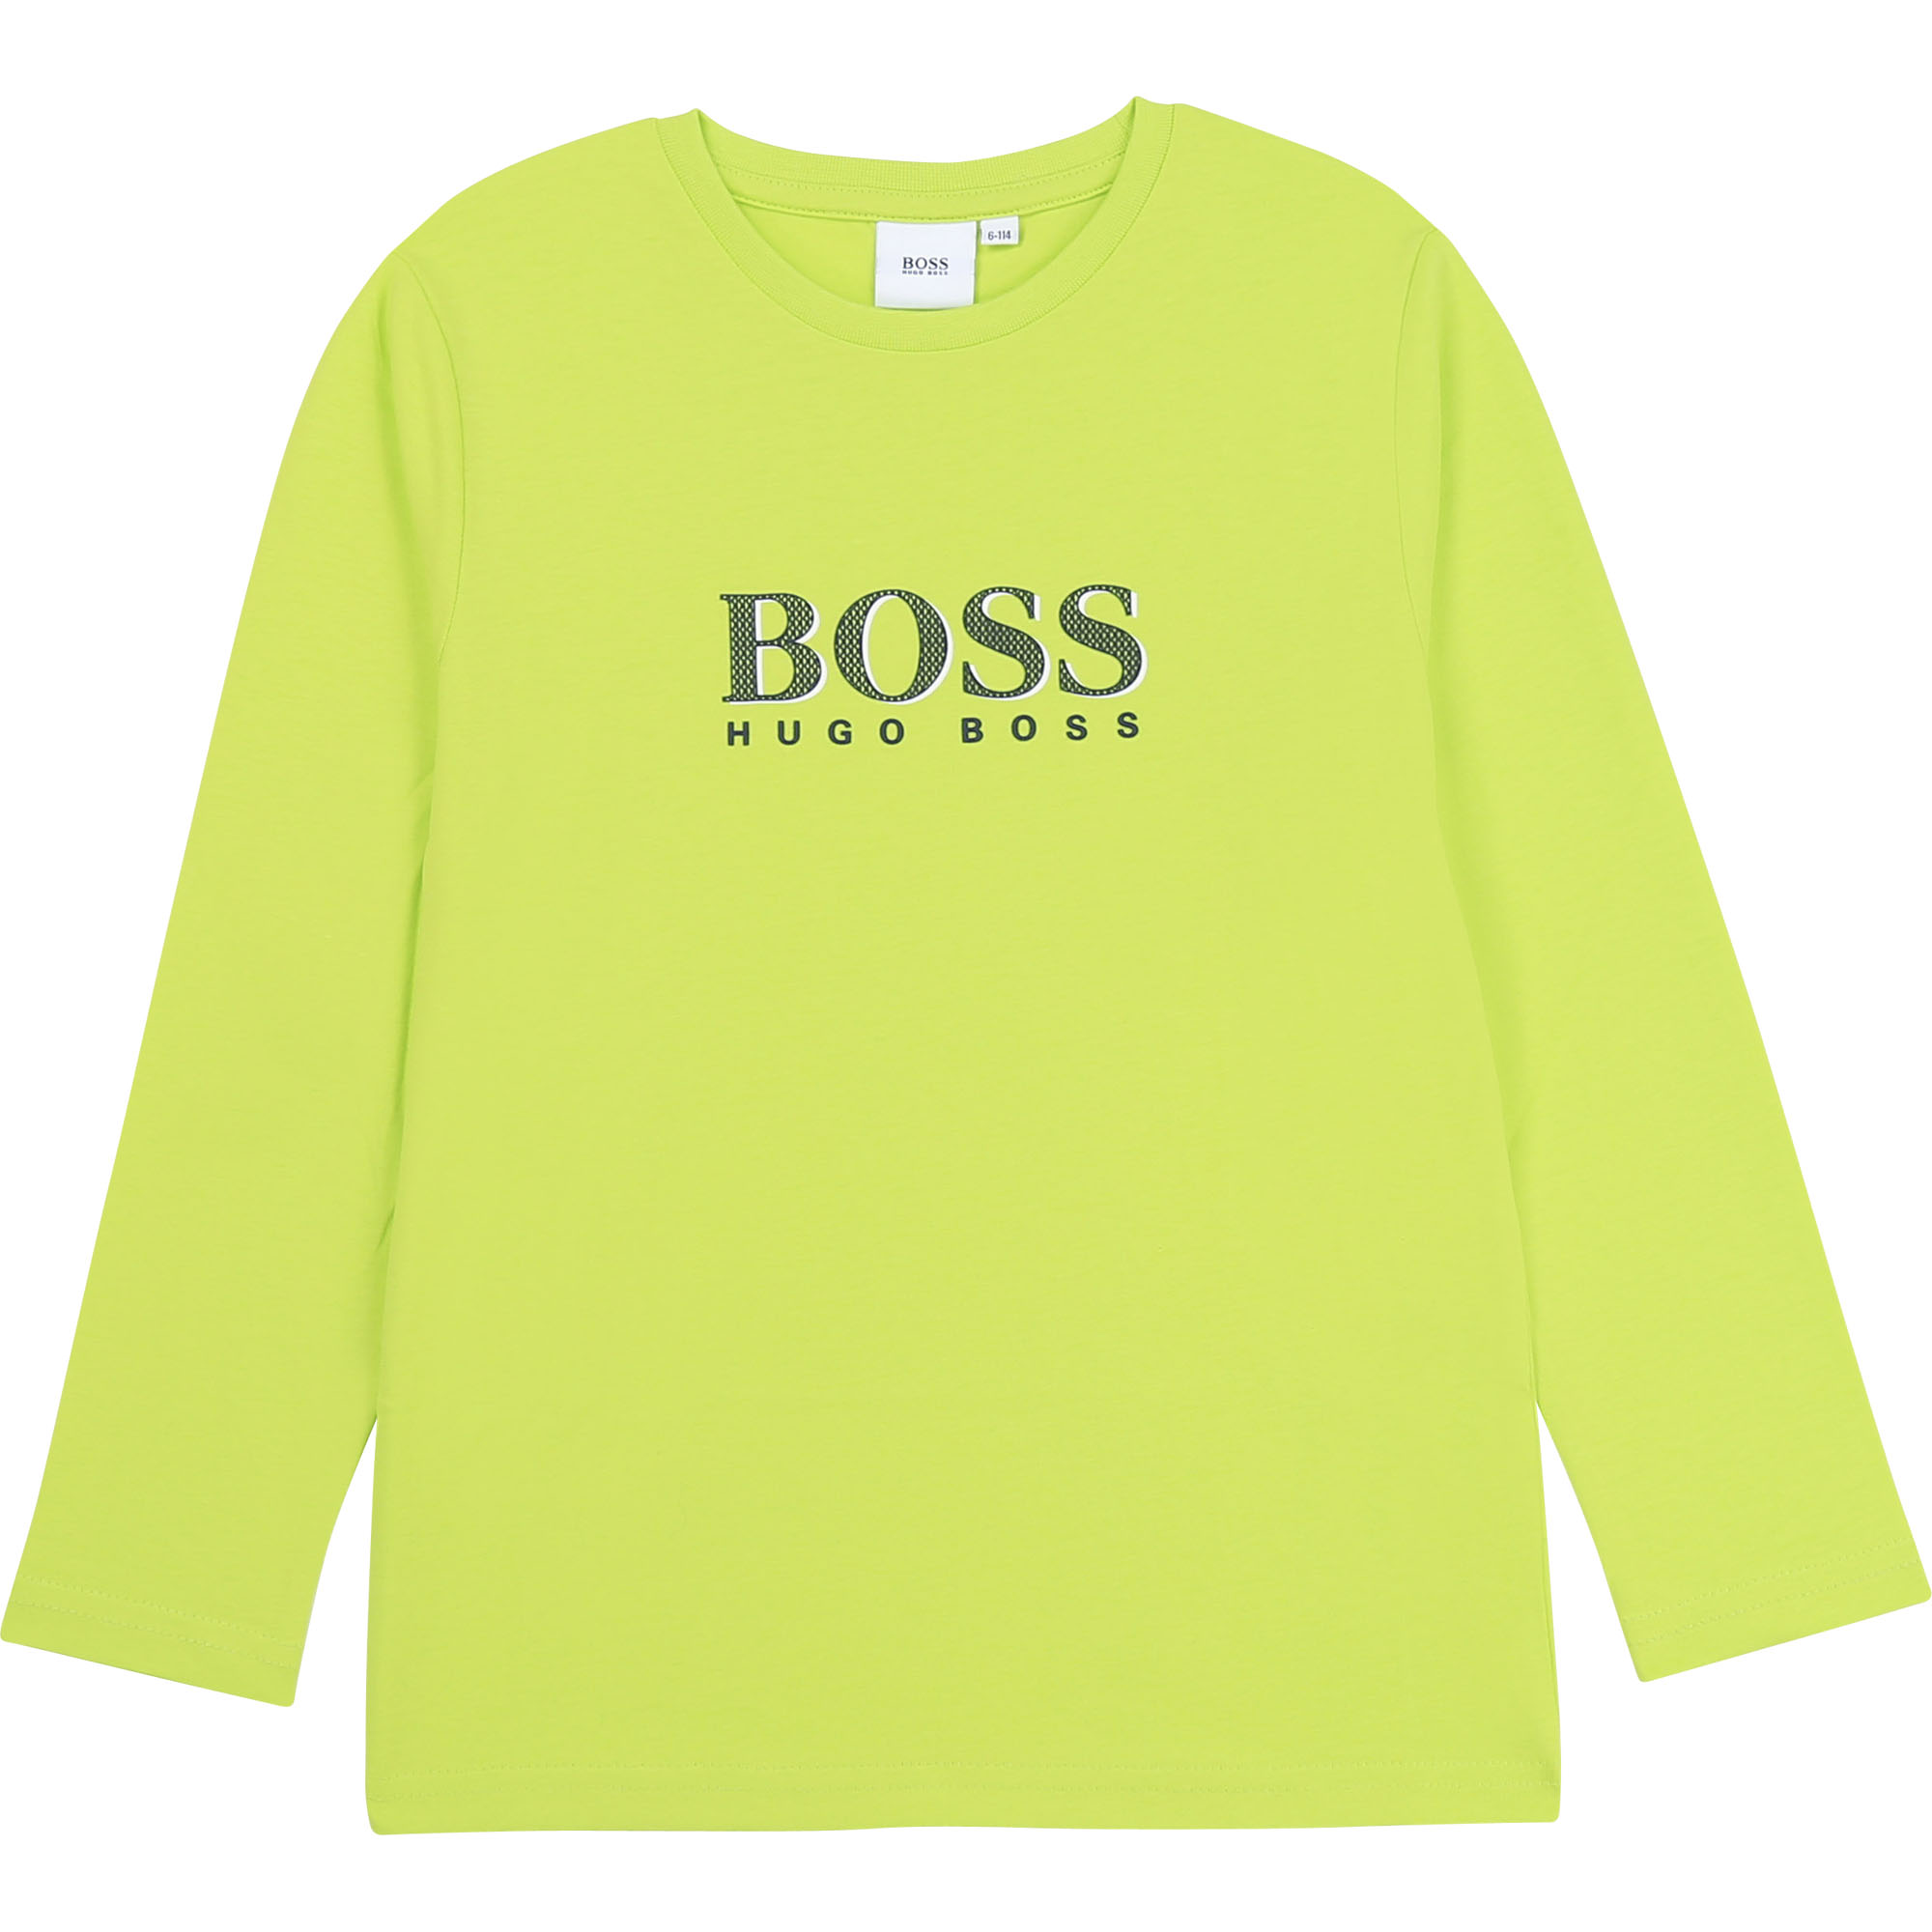 Camiseta Manga Larga HUGO BOSS Amarilla